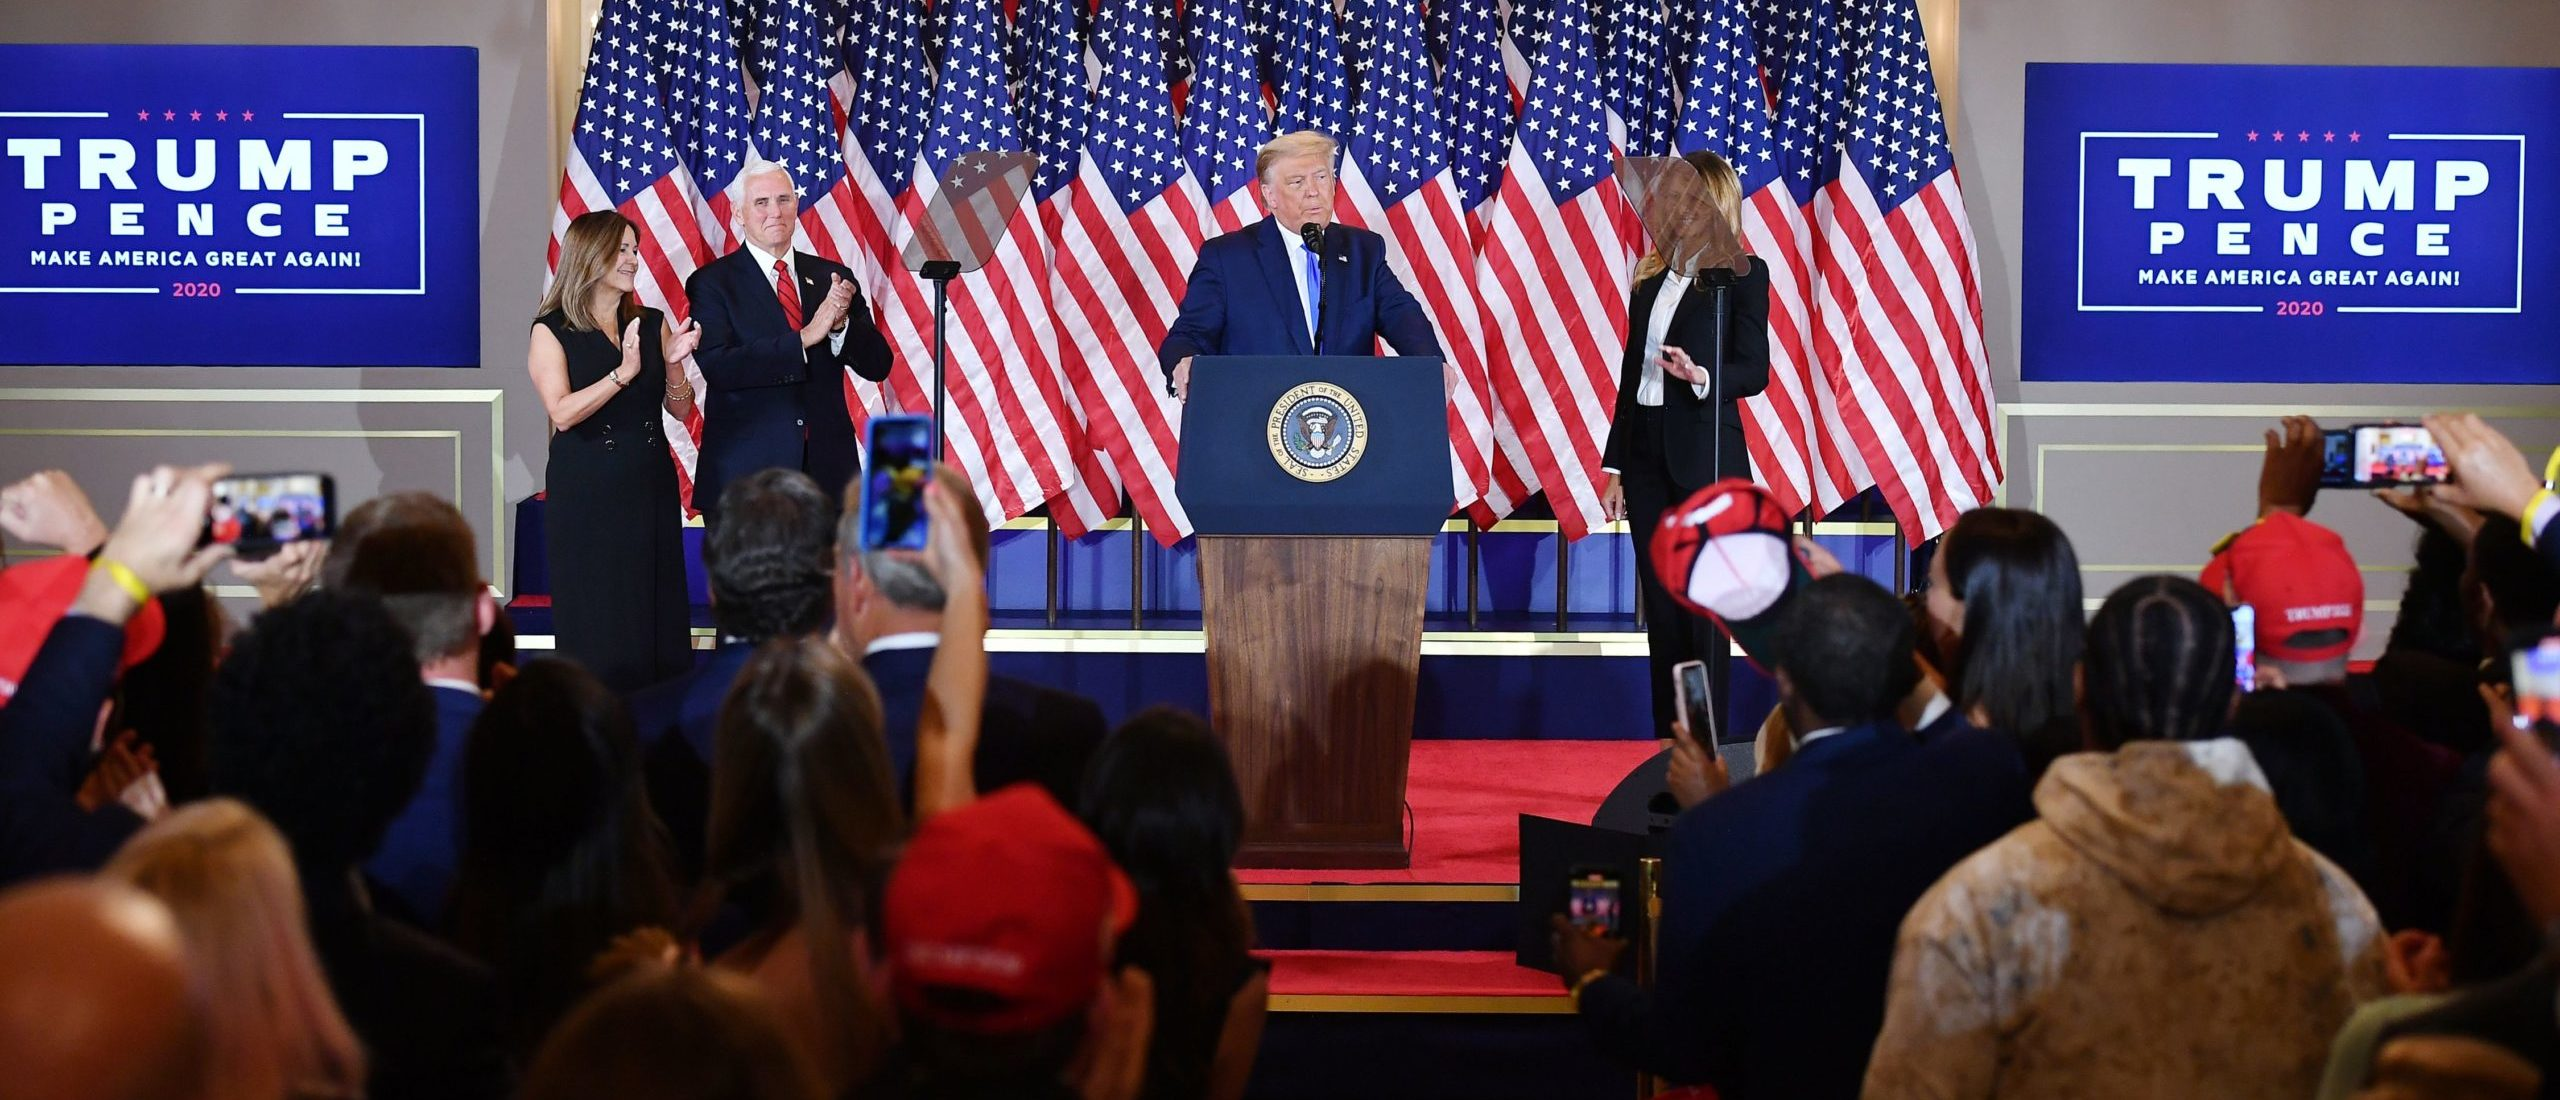 US President Donald Trump, flanked by Karen Pence (L), US Vice President Mike Pence (2nd L) and US First Lady Melania Trump (R), speaks during election night in the East Room of the White House in Washington, DC, early on November 4, 2020. (Photo by MANDEL NGAN/AFP via Getty Images)